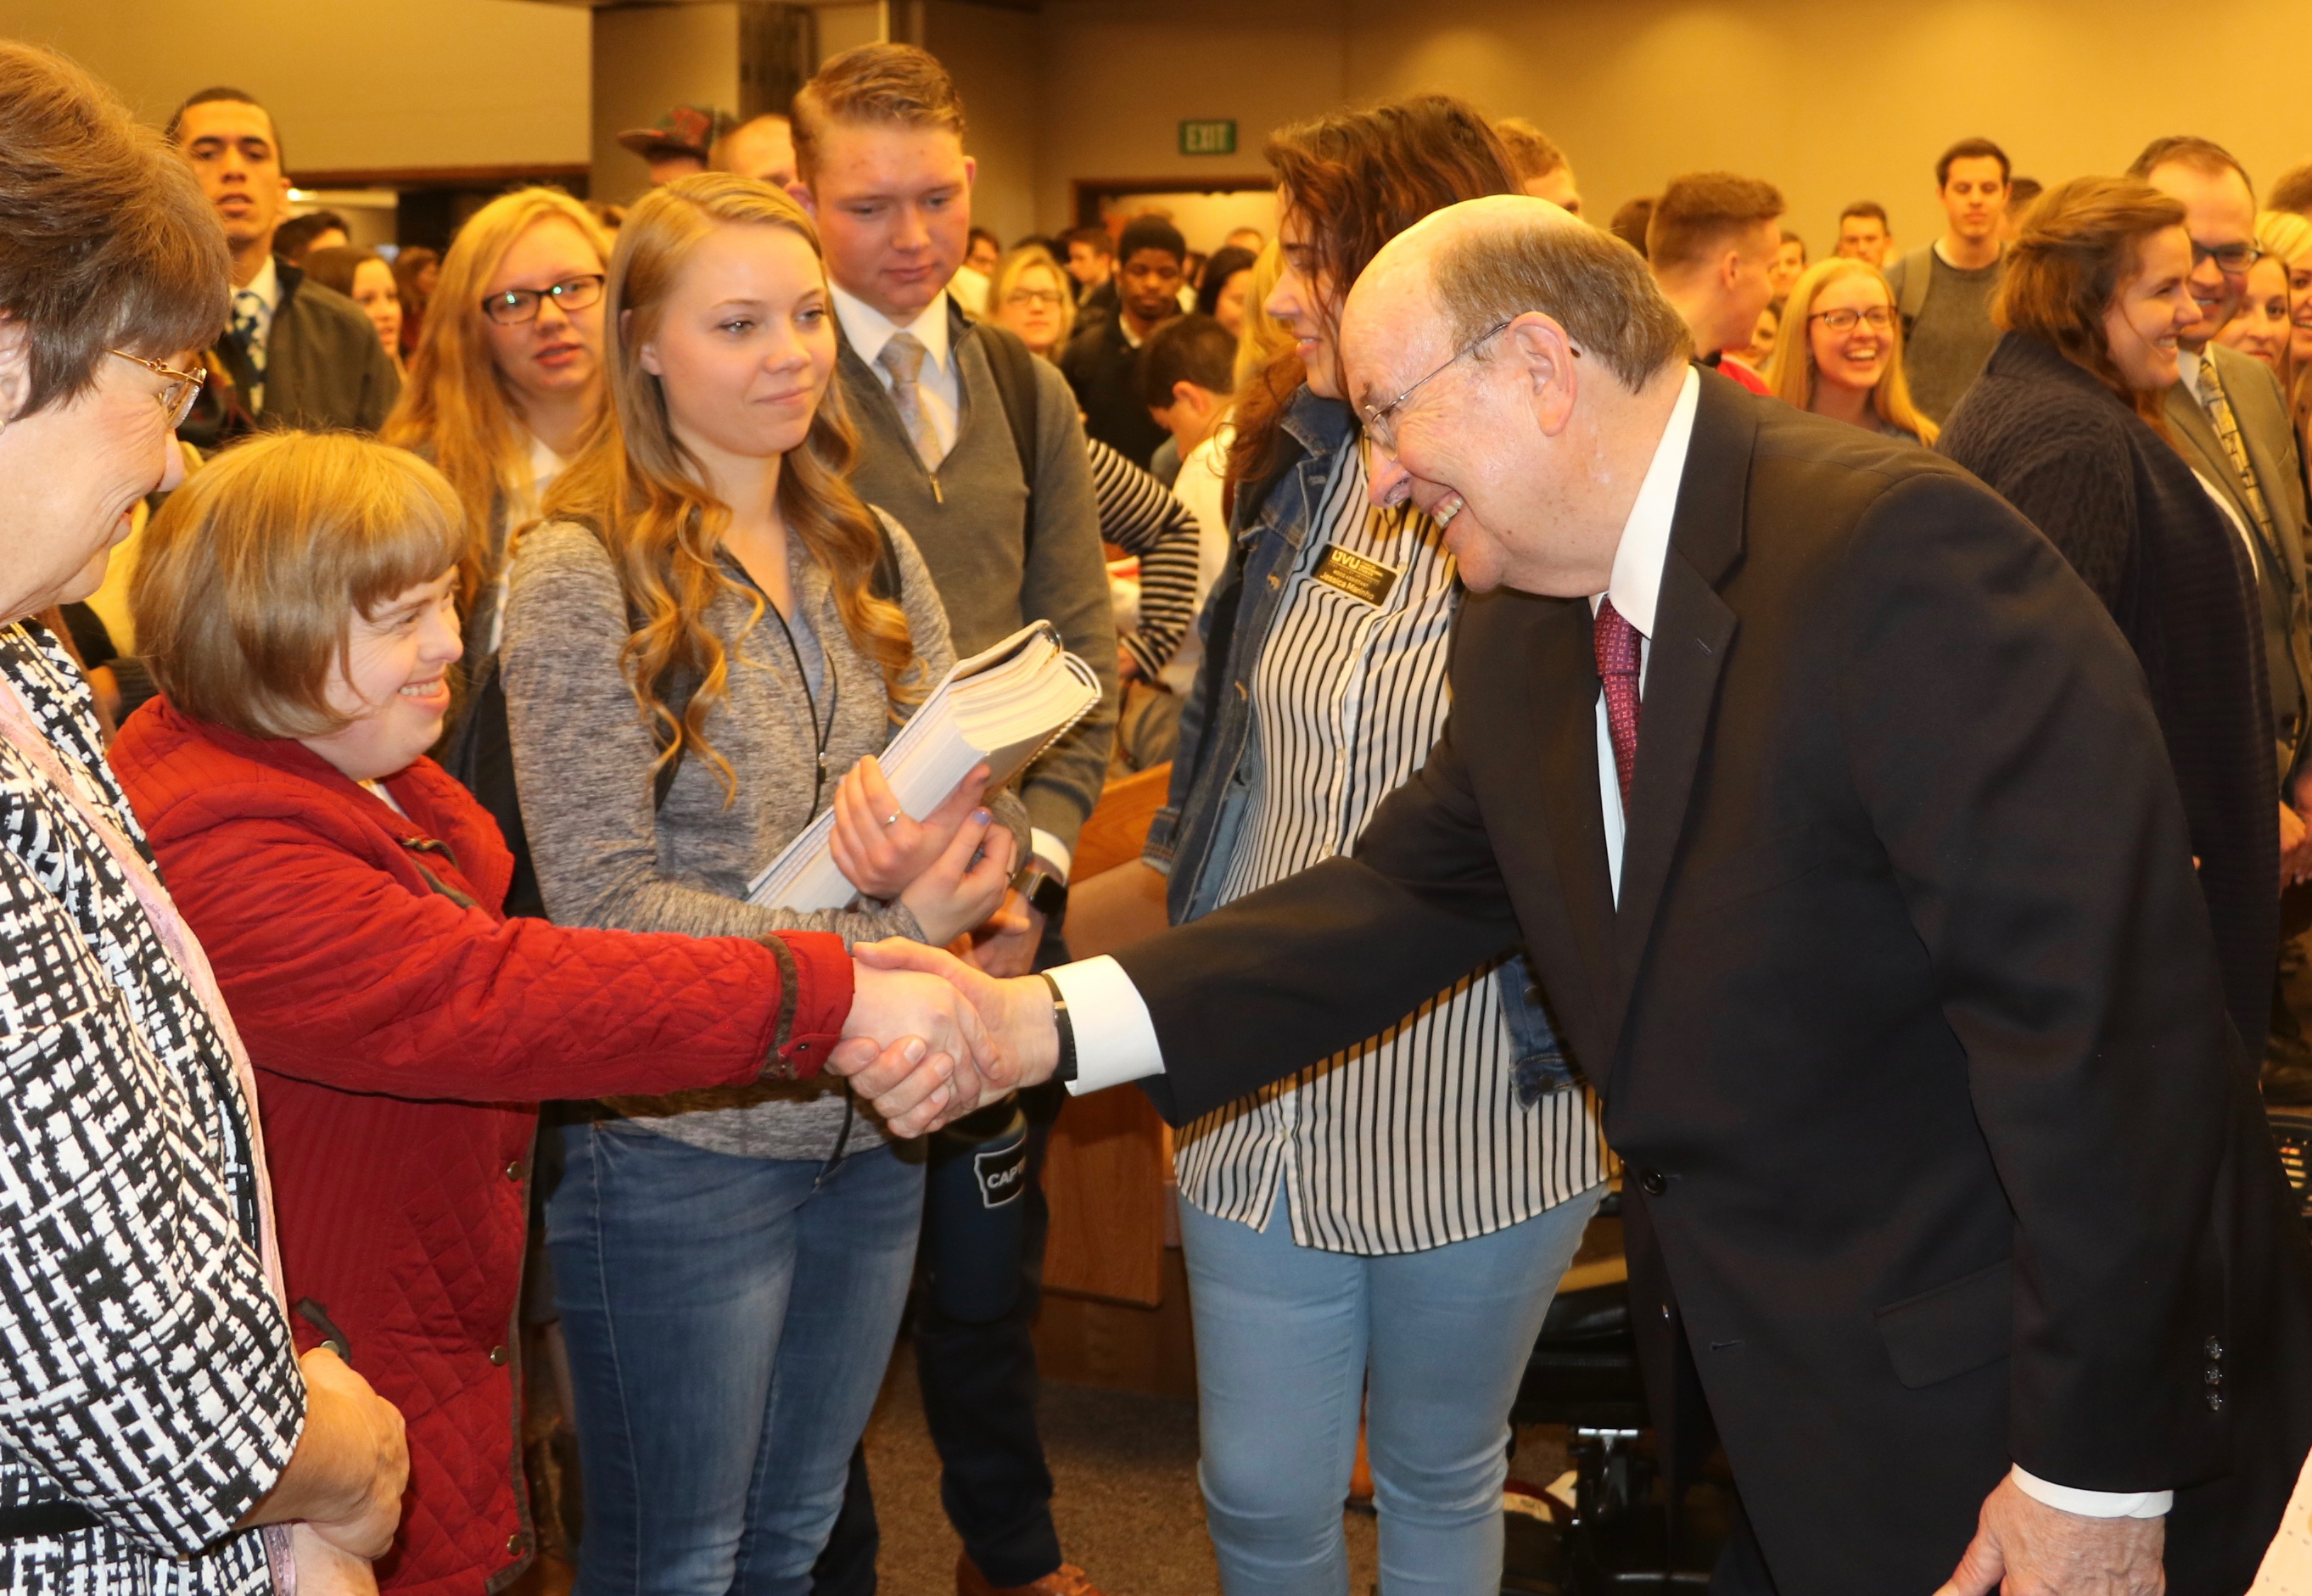 Elder Quentin L. Cook of the Quorum of the Twelve Apostles, shakes hands with staff, faculty and students after a Friday, Feb. 1, 2019, devotional at the Utah Valley Institute on the Utah Valley University campus in Orem, Utah.